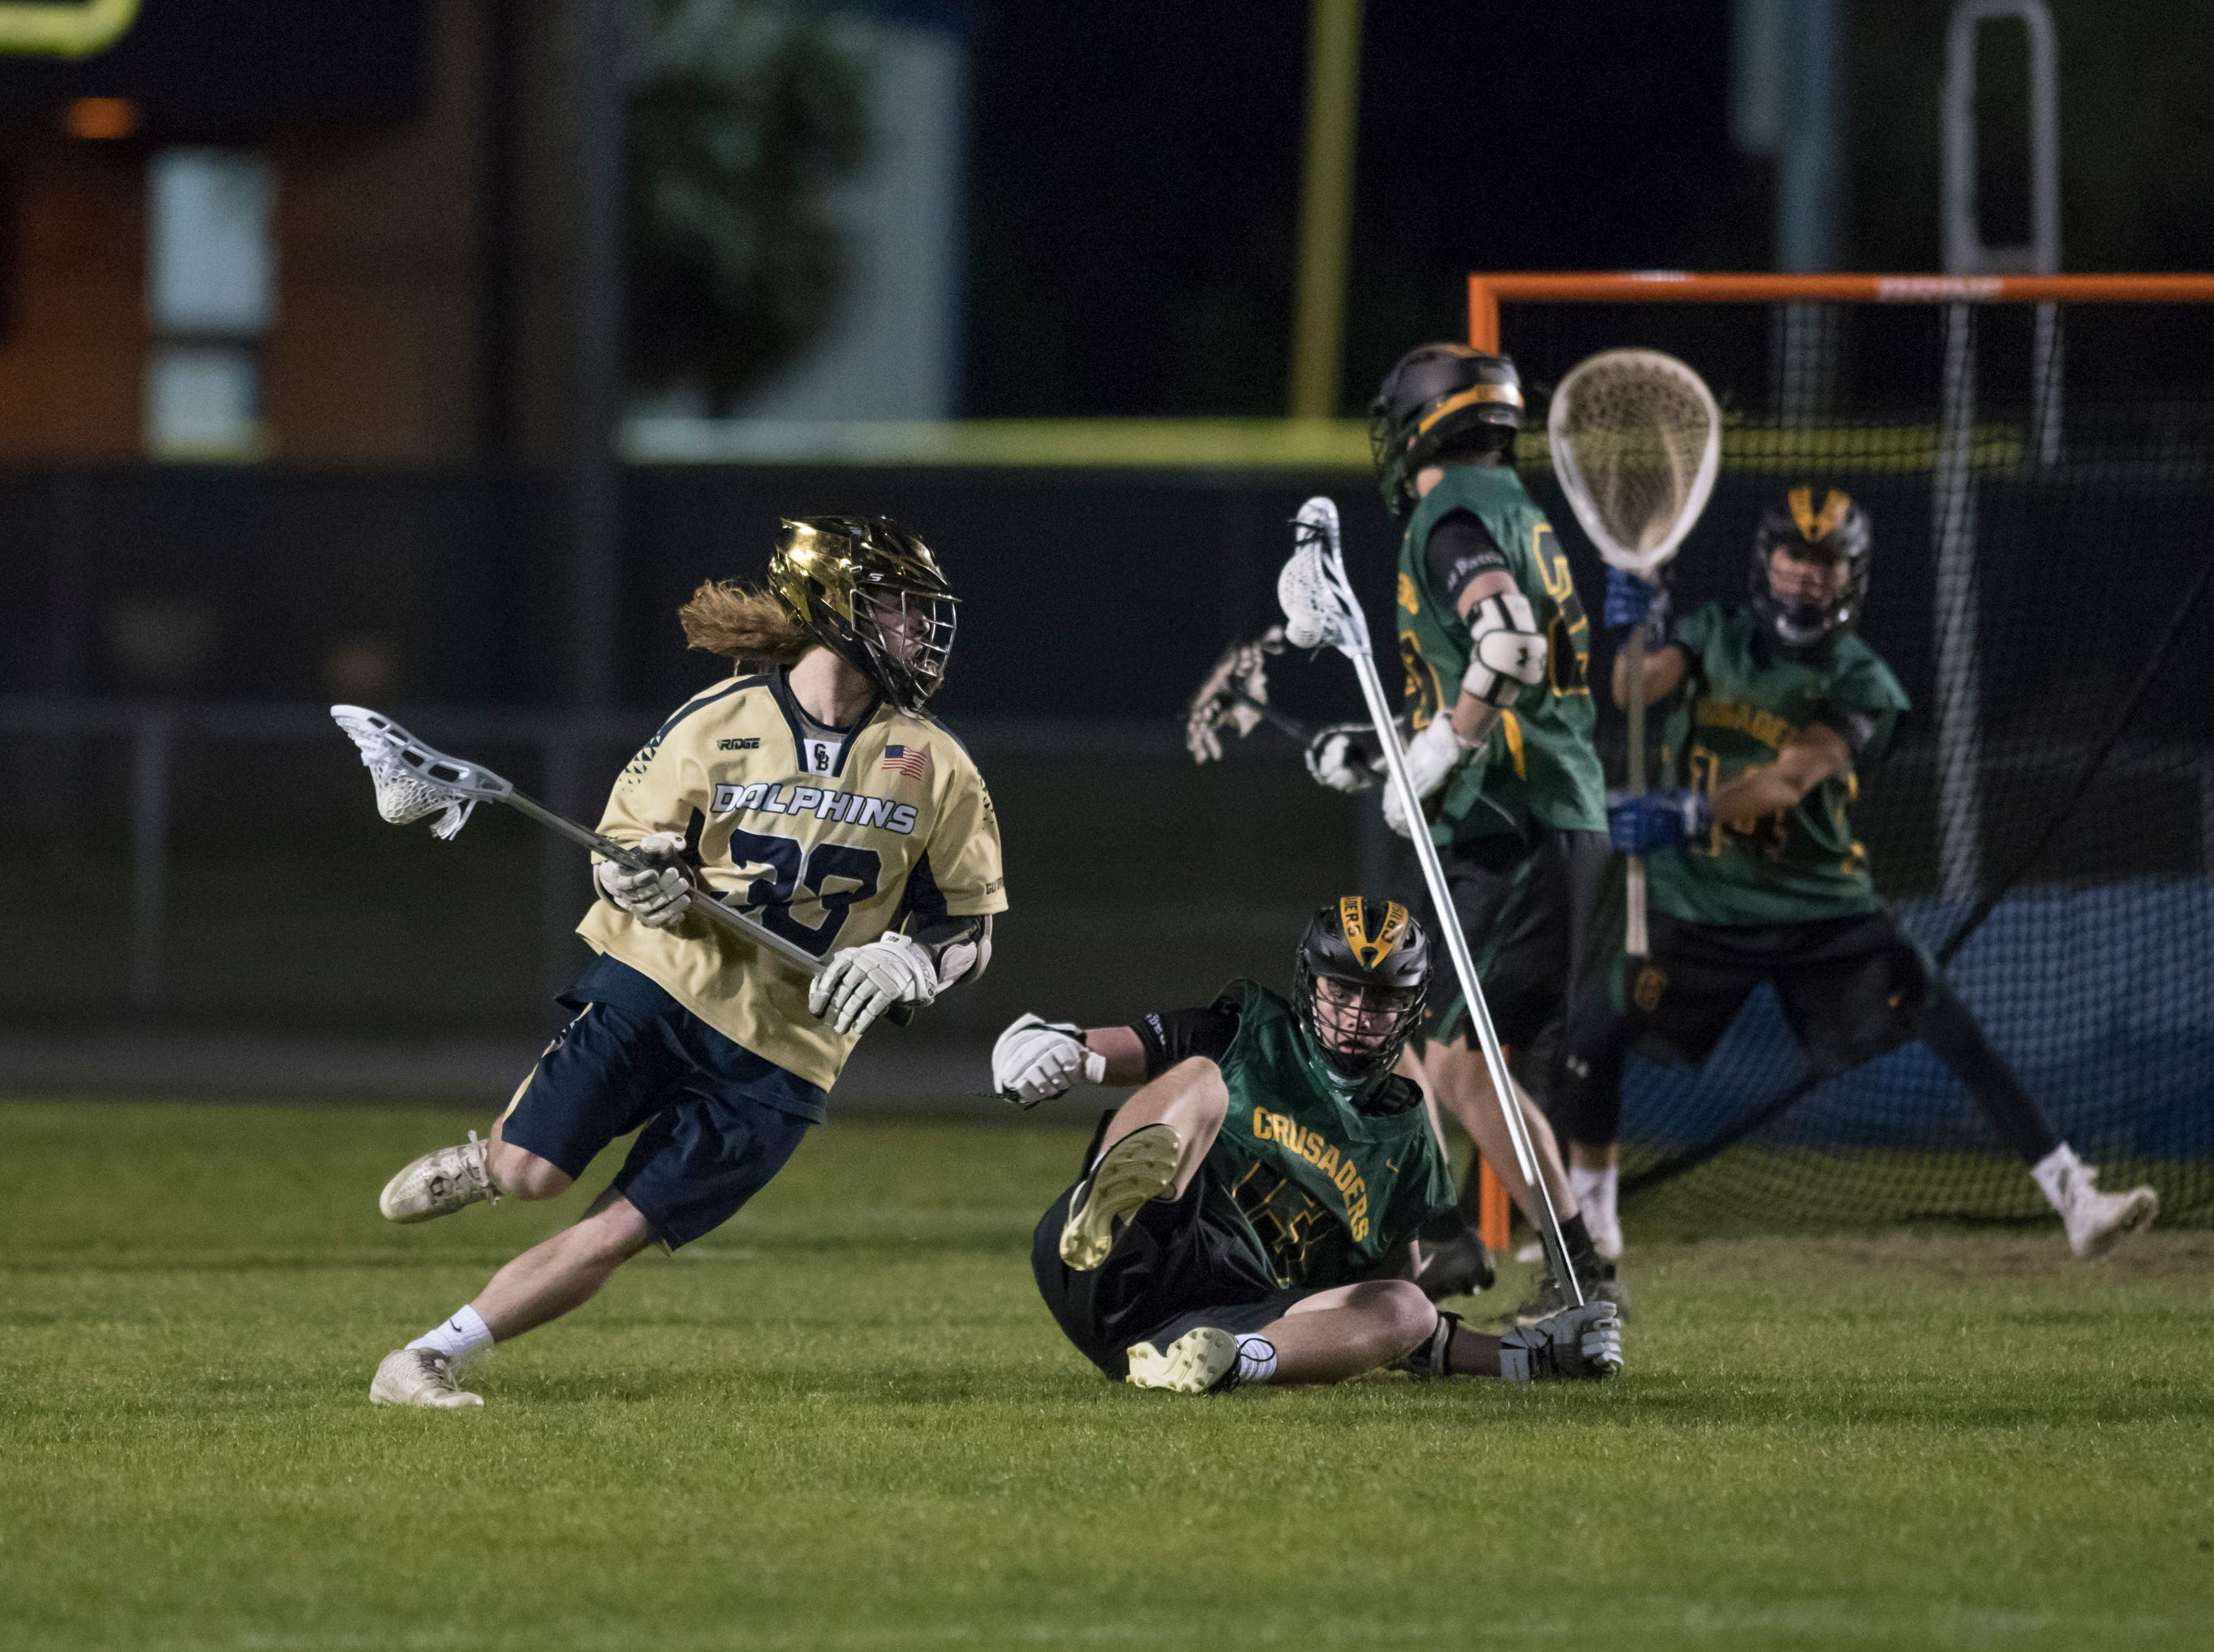 Kincade Essex (33) controls the ball during the Catholic vs. Gulf Breeze boys lacrosse game at Gulf Breeze High School on Wednesday, March 6, 2019.